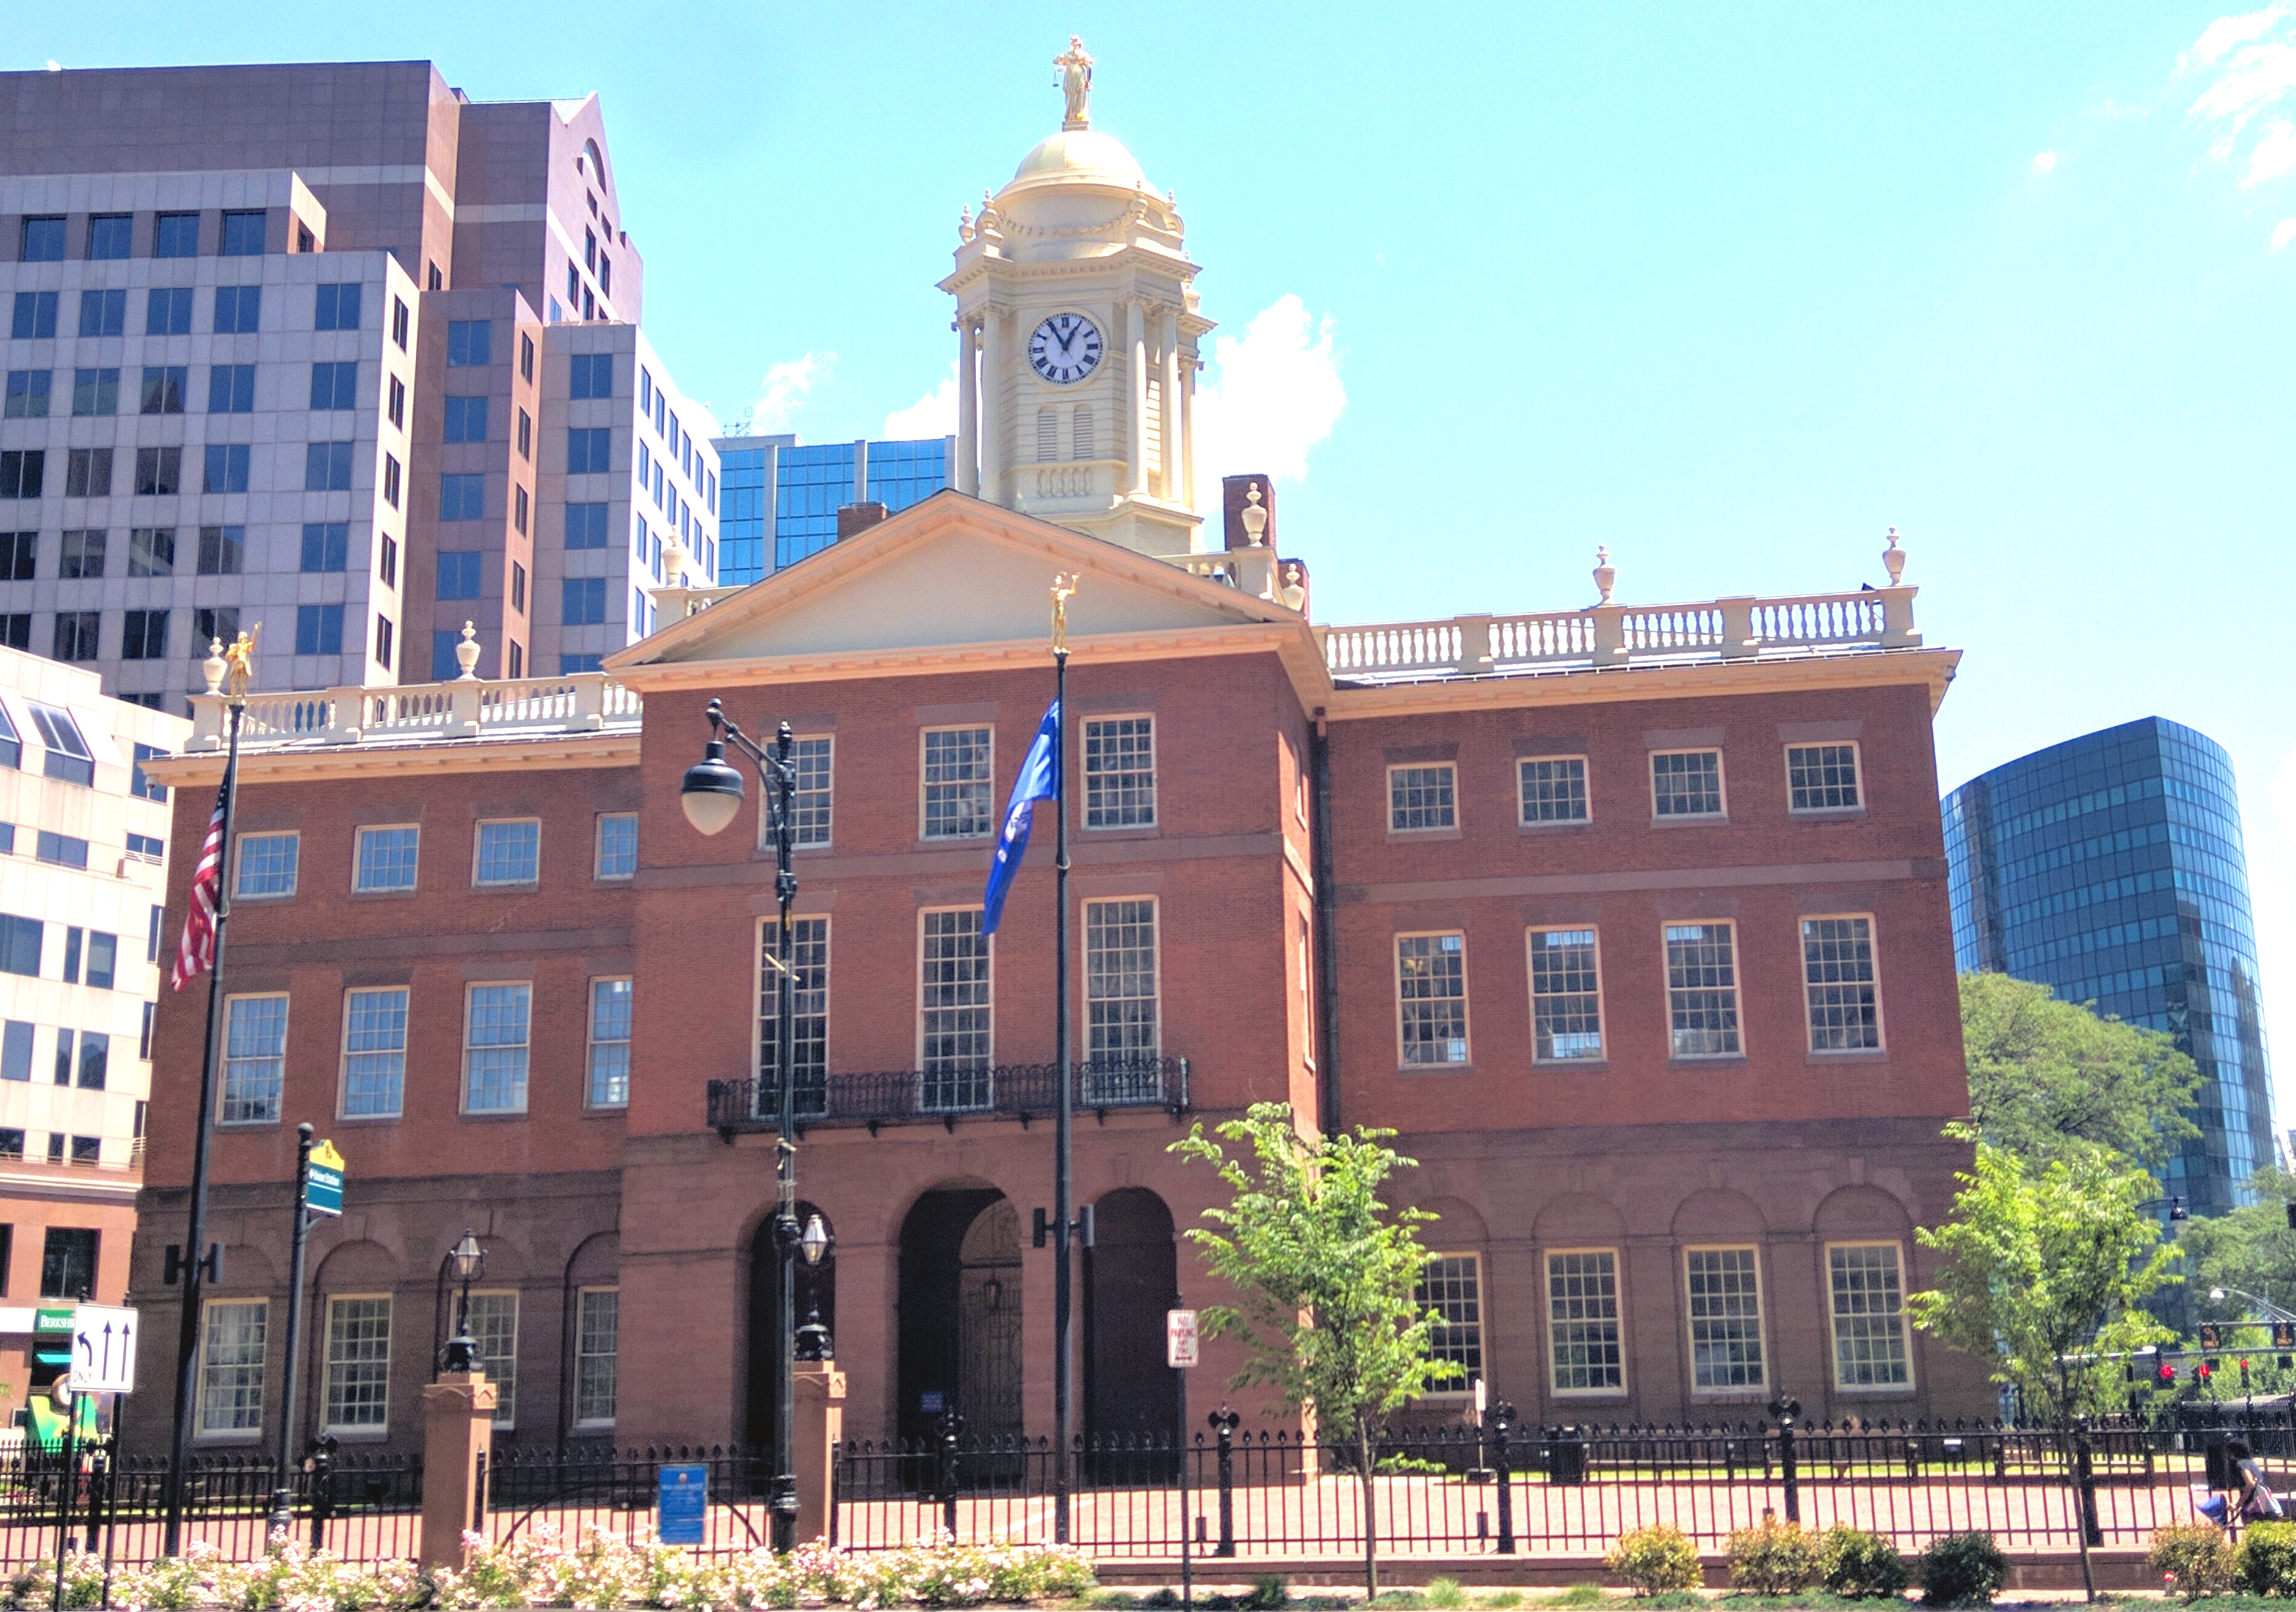 The Old State House in Hartford